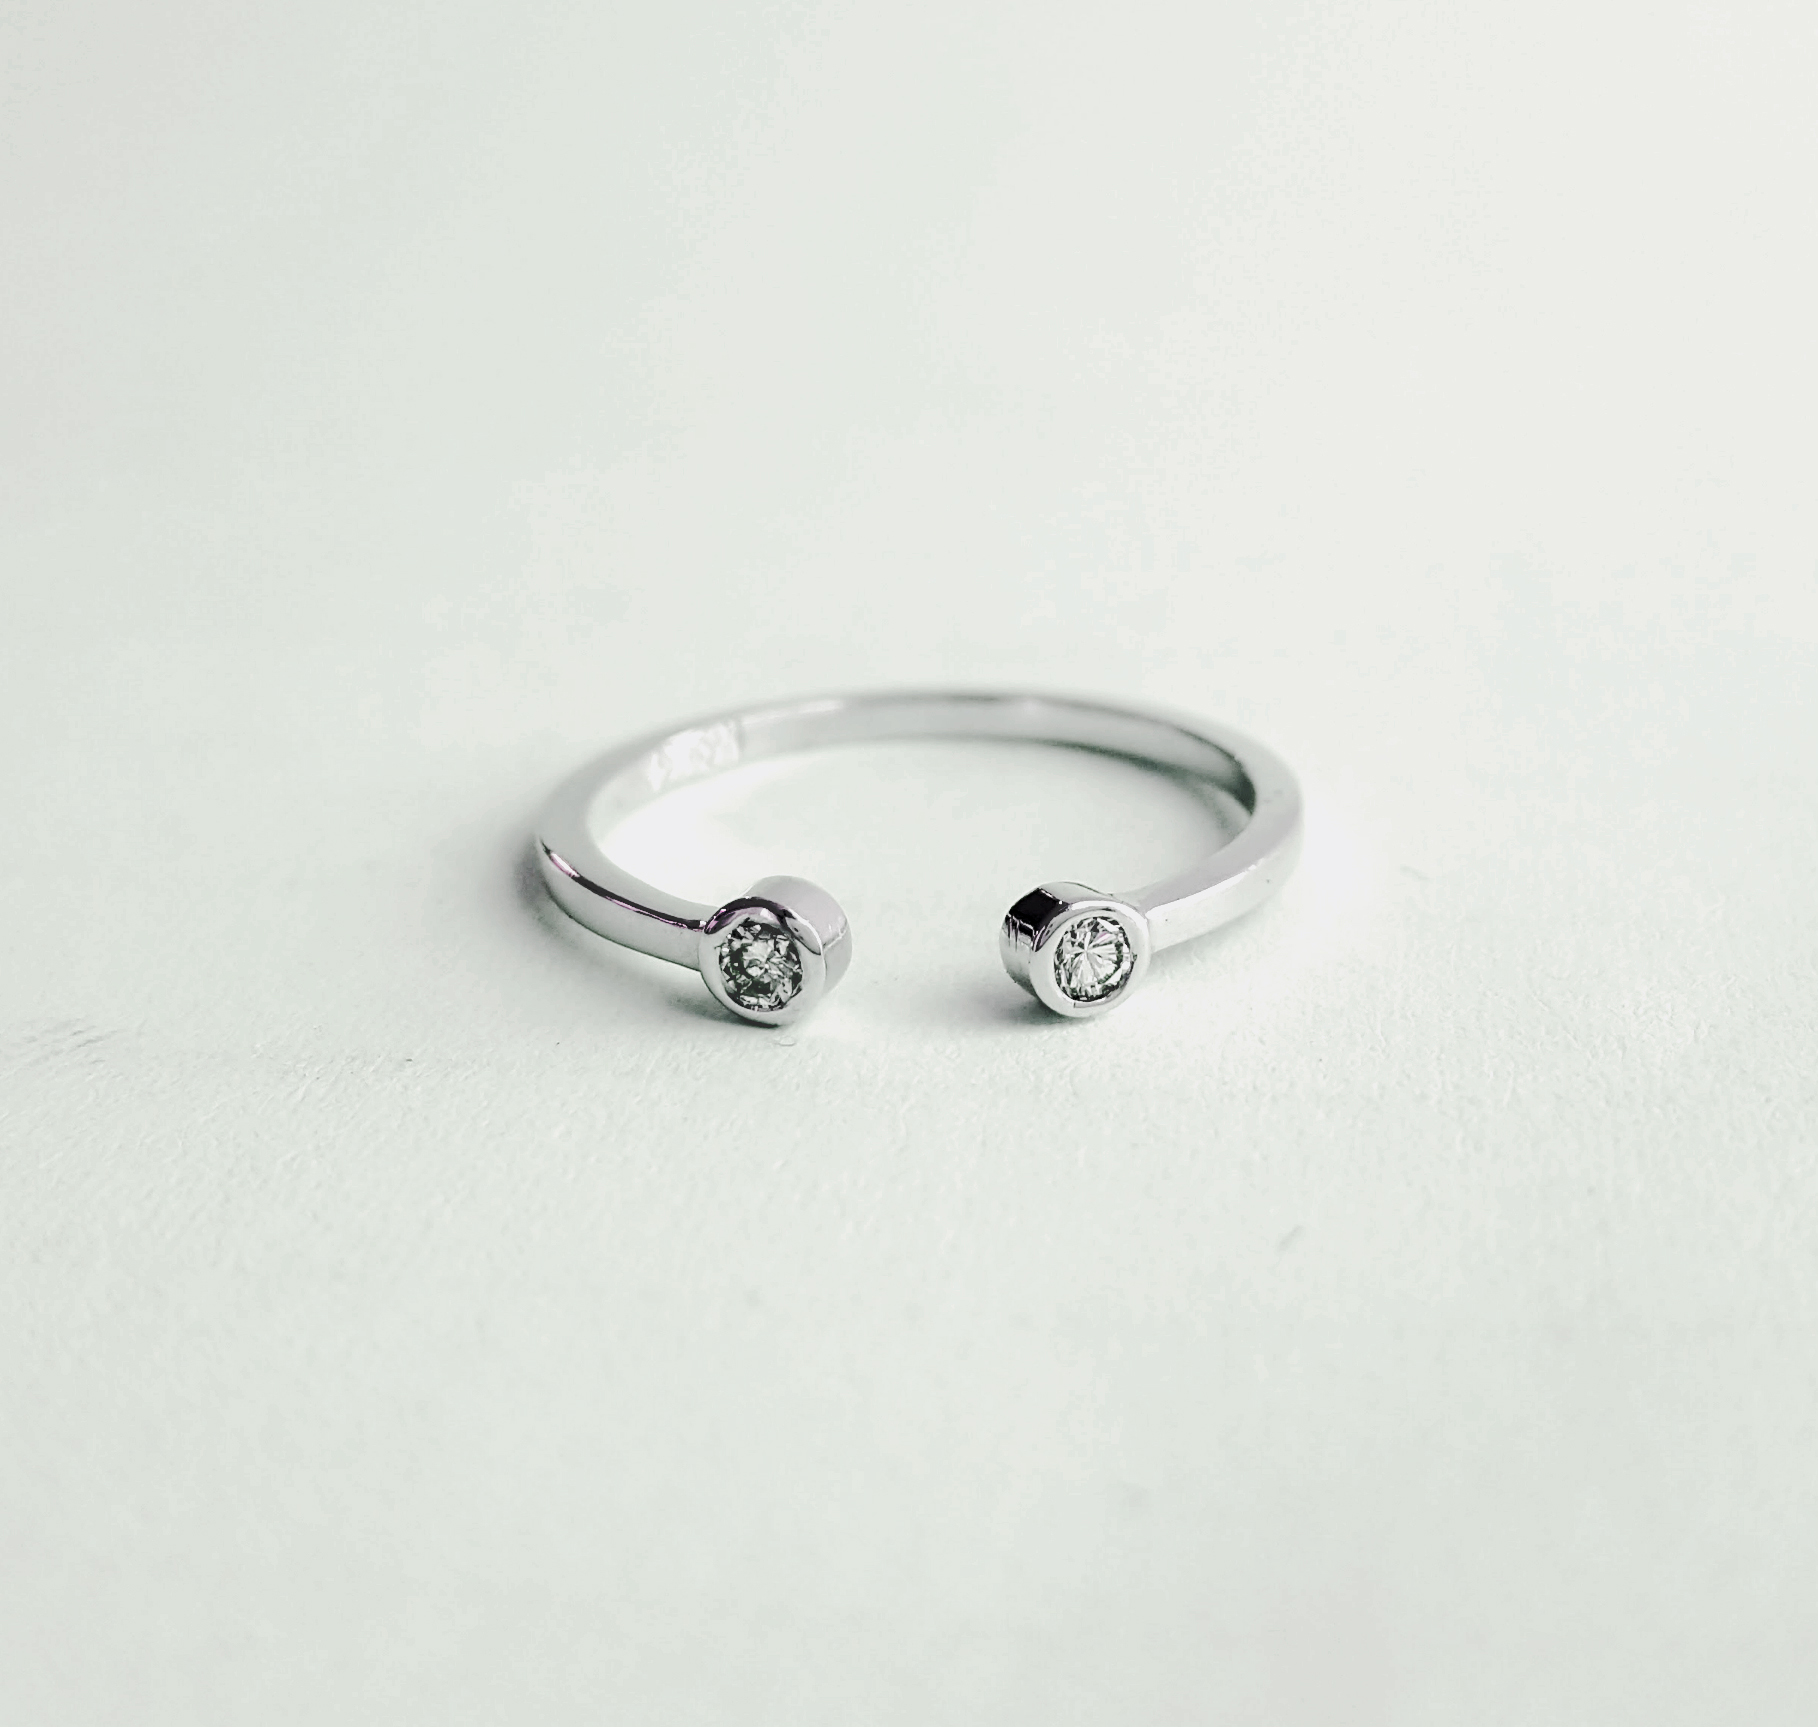 Gap ring – Christy-Anne Jewellery